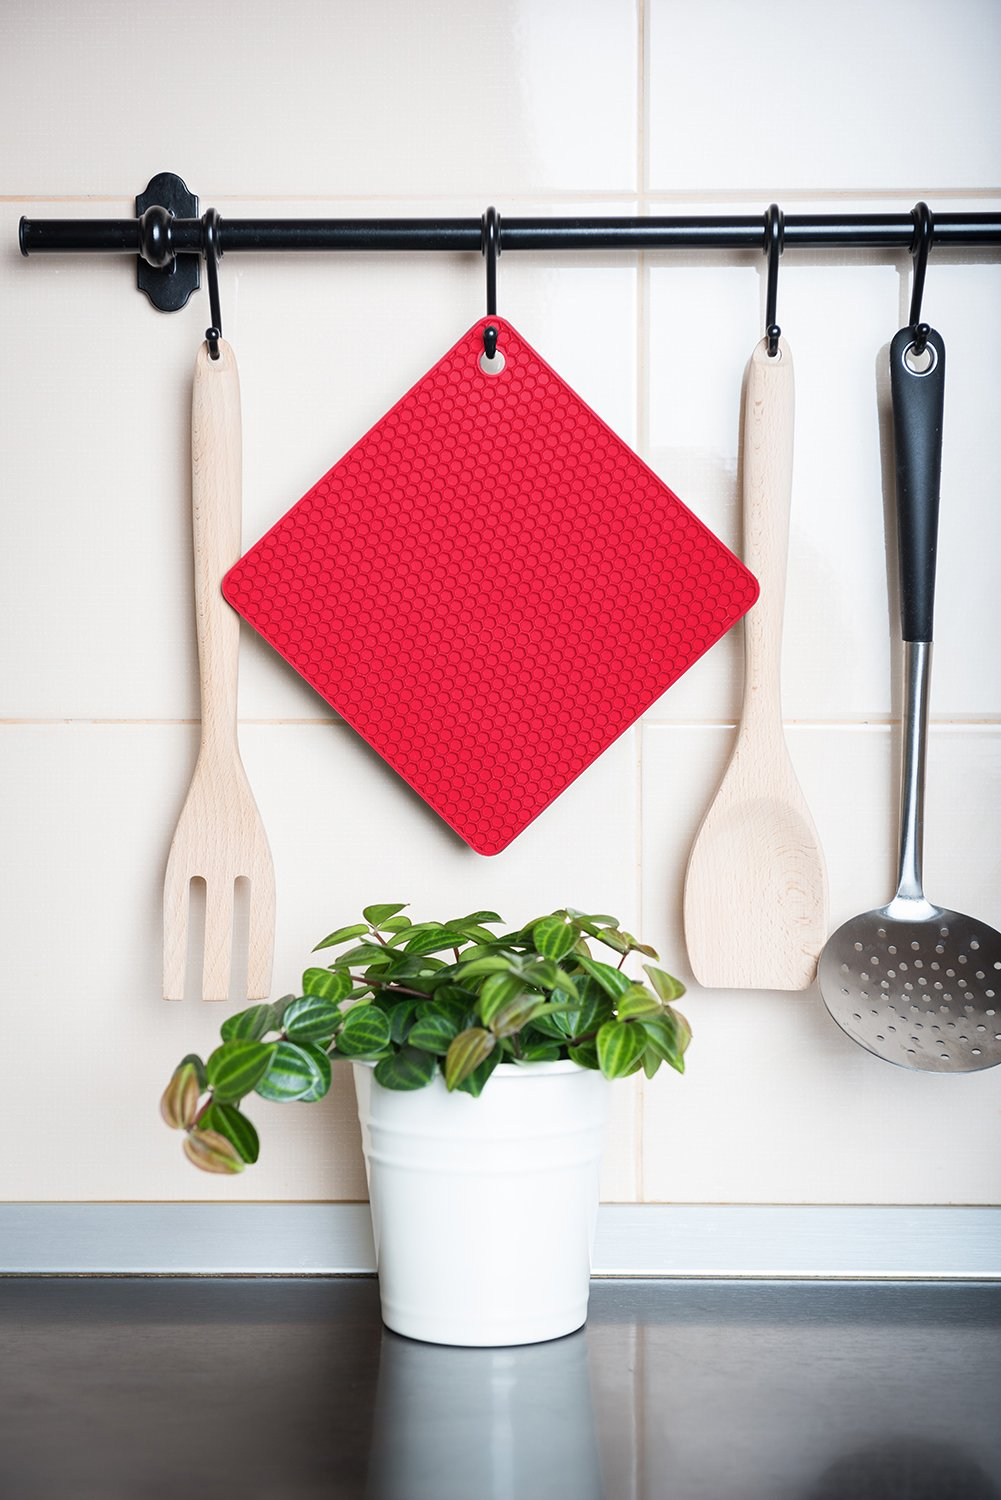 Q's INN Silicone Trivet Mats | Hot Pot Holders | Drying Mat. Our 7 in 1 Multi-Purpose Kitchen Tool is Heat Resistant to 440°F, Non-slip,durable, flexible easy to wash and dry and Contains 4 pcs. by Q's INN (Image #9)